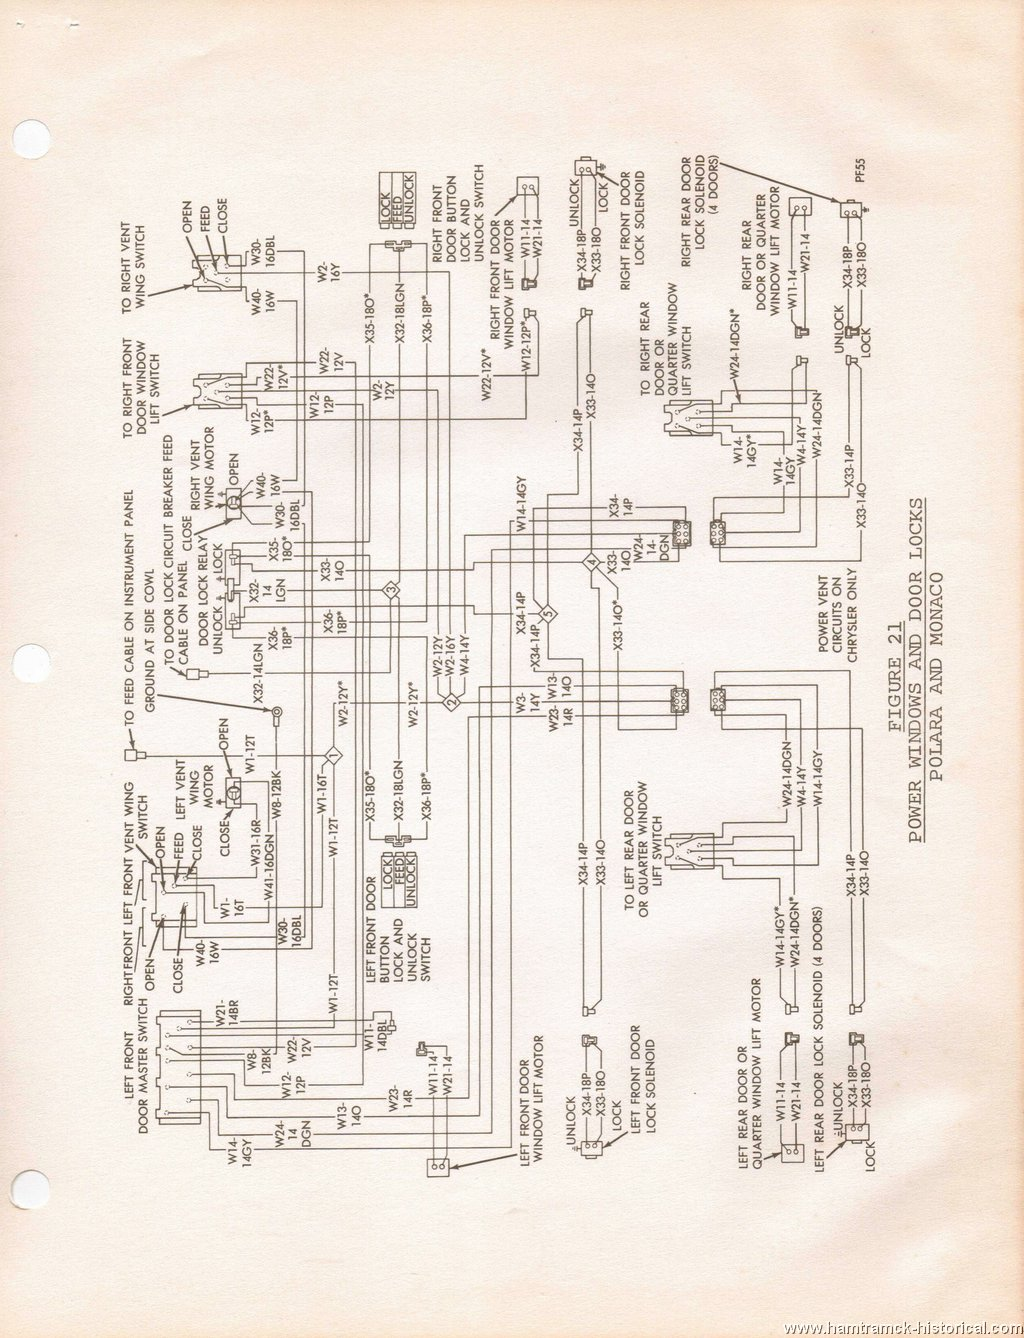 1978 dodge truck ignition wiring diagram 3 phase electric duct heater 1972 van free engine image for